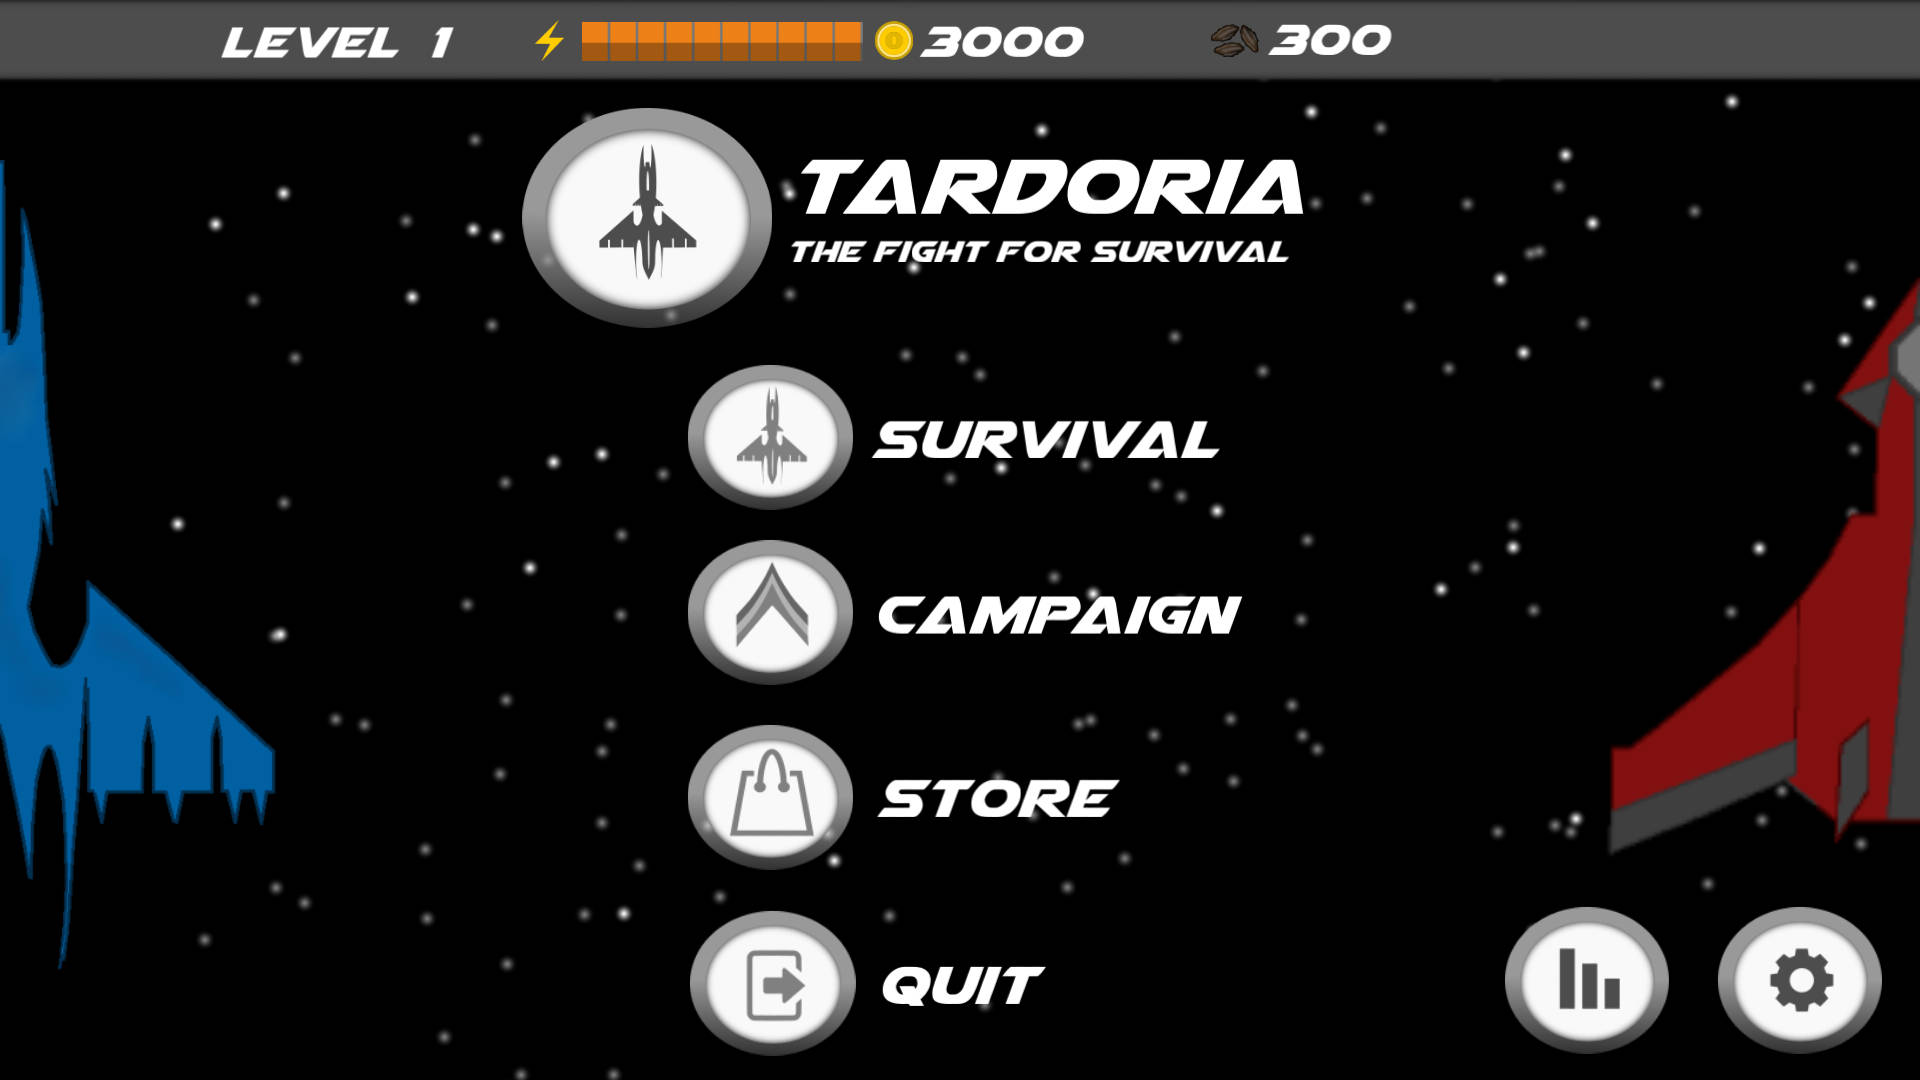 Menu screen of Tardoria